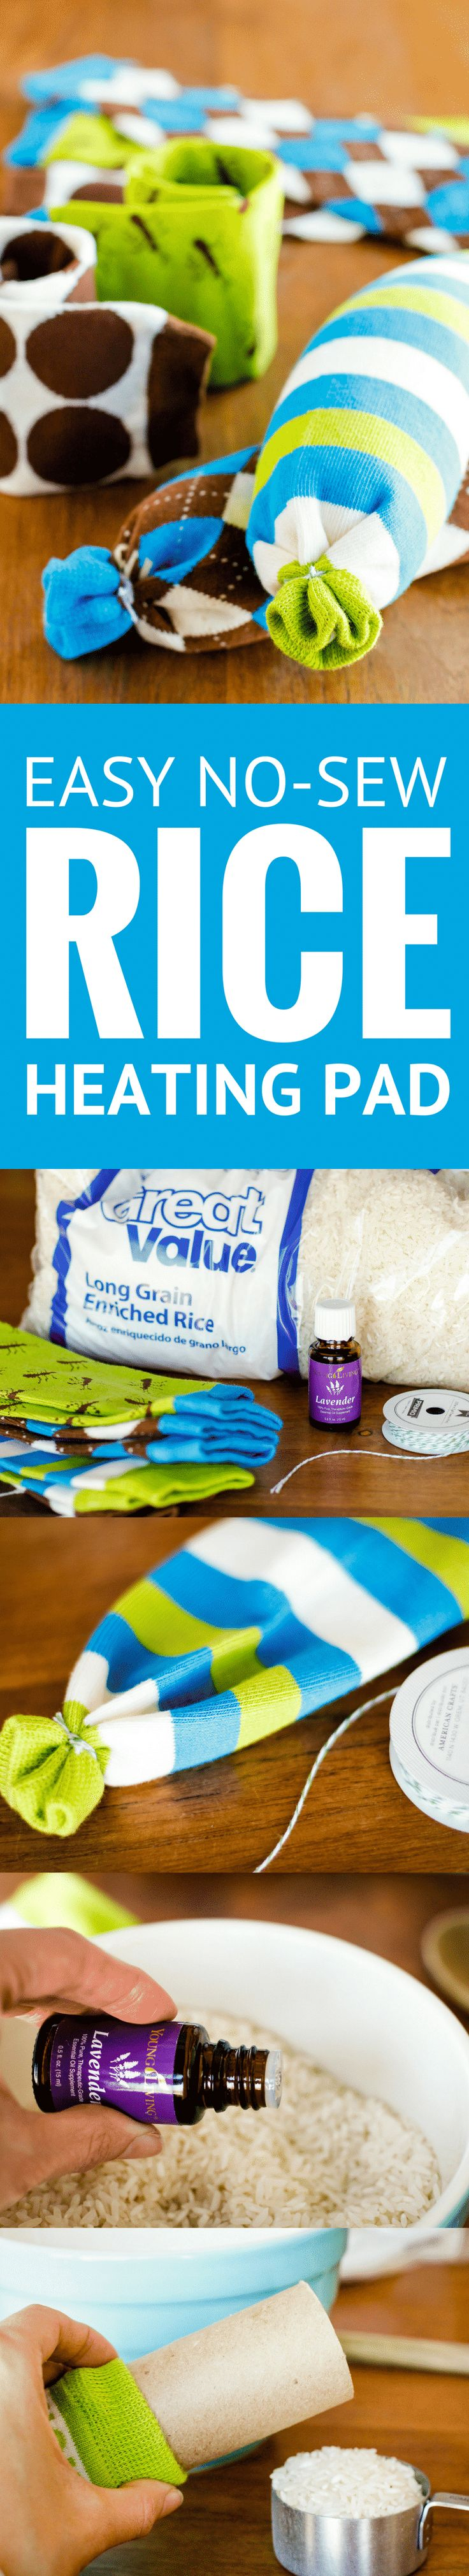 Easy No-Sew Rice Heating Pad -- these homemade microwavable rice heating pads took less than 5 minutes to make, start to finish! Perfect for soothing sore muscles or warming up from the cold, especially when you add a few drops of essential oil…| rice heating pad sock | rice heating pad diy | homemade hot pack | rice heating pad instructions | rice heating pad tutorial | how to make a rice heating pad | find the tutorial on unsophisticook.com